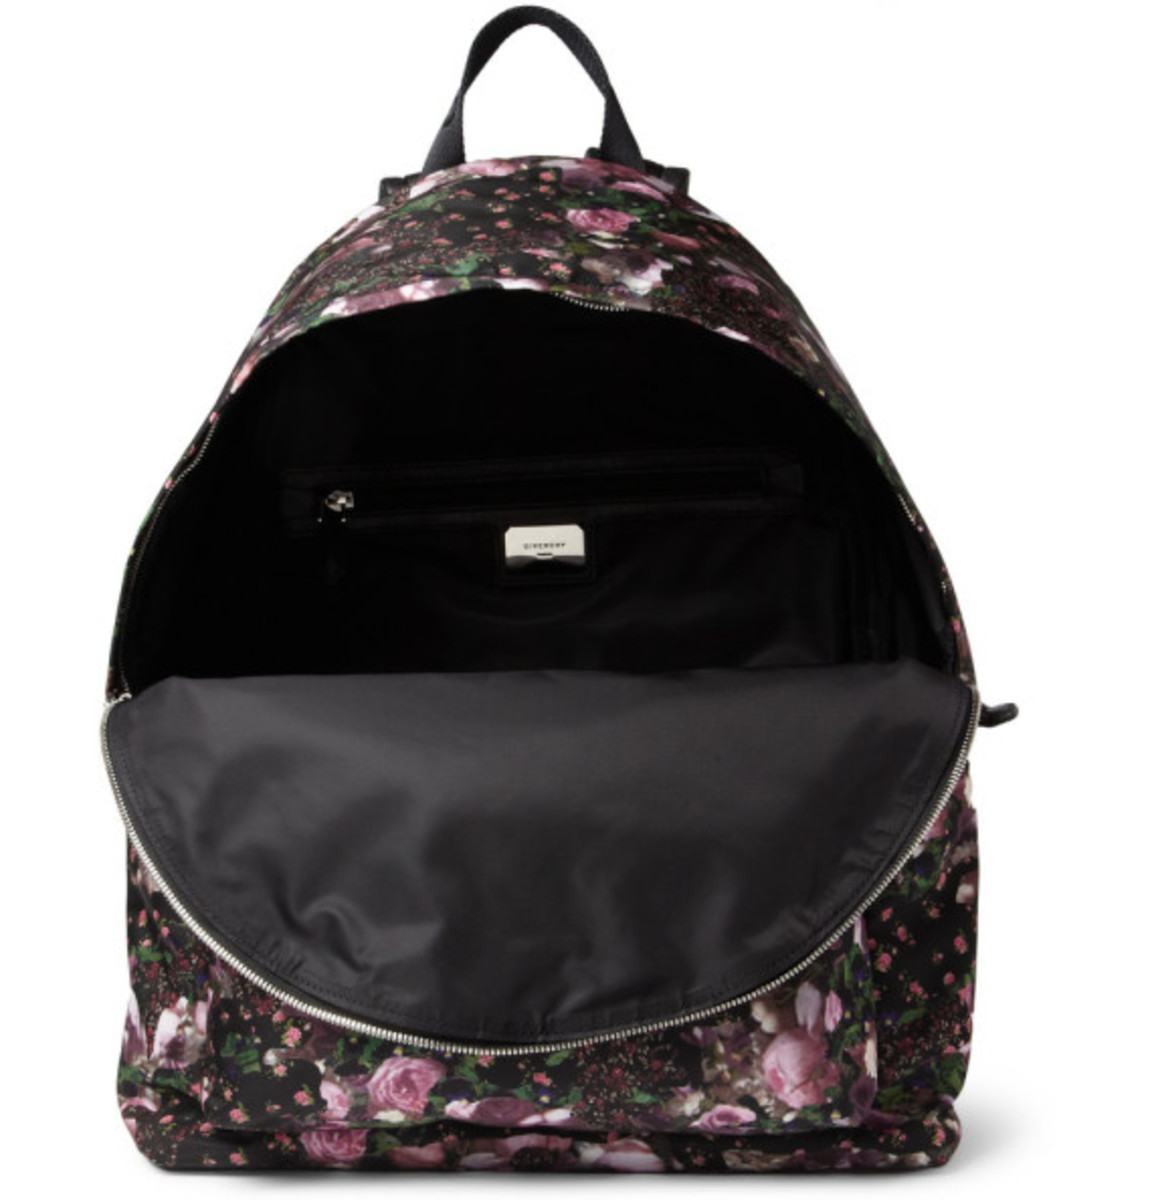 givenchy-floral-print-backpack-07